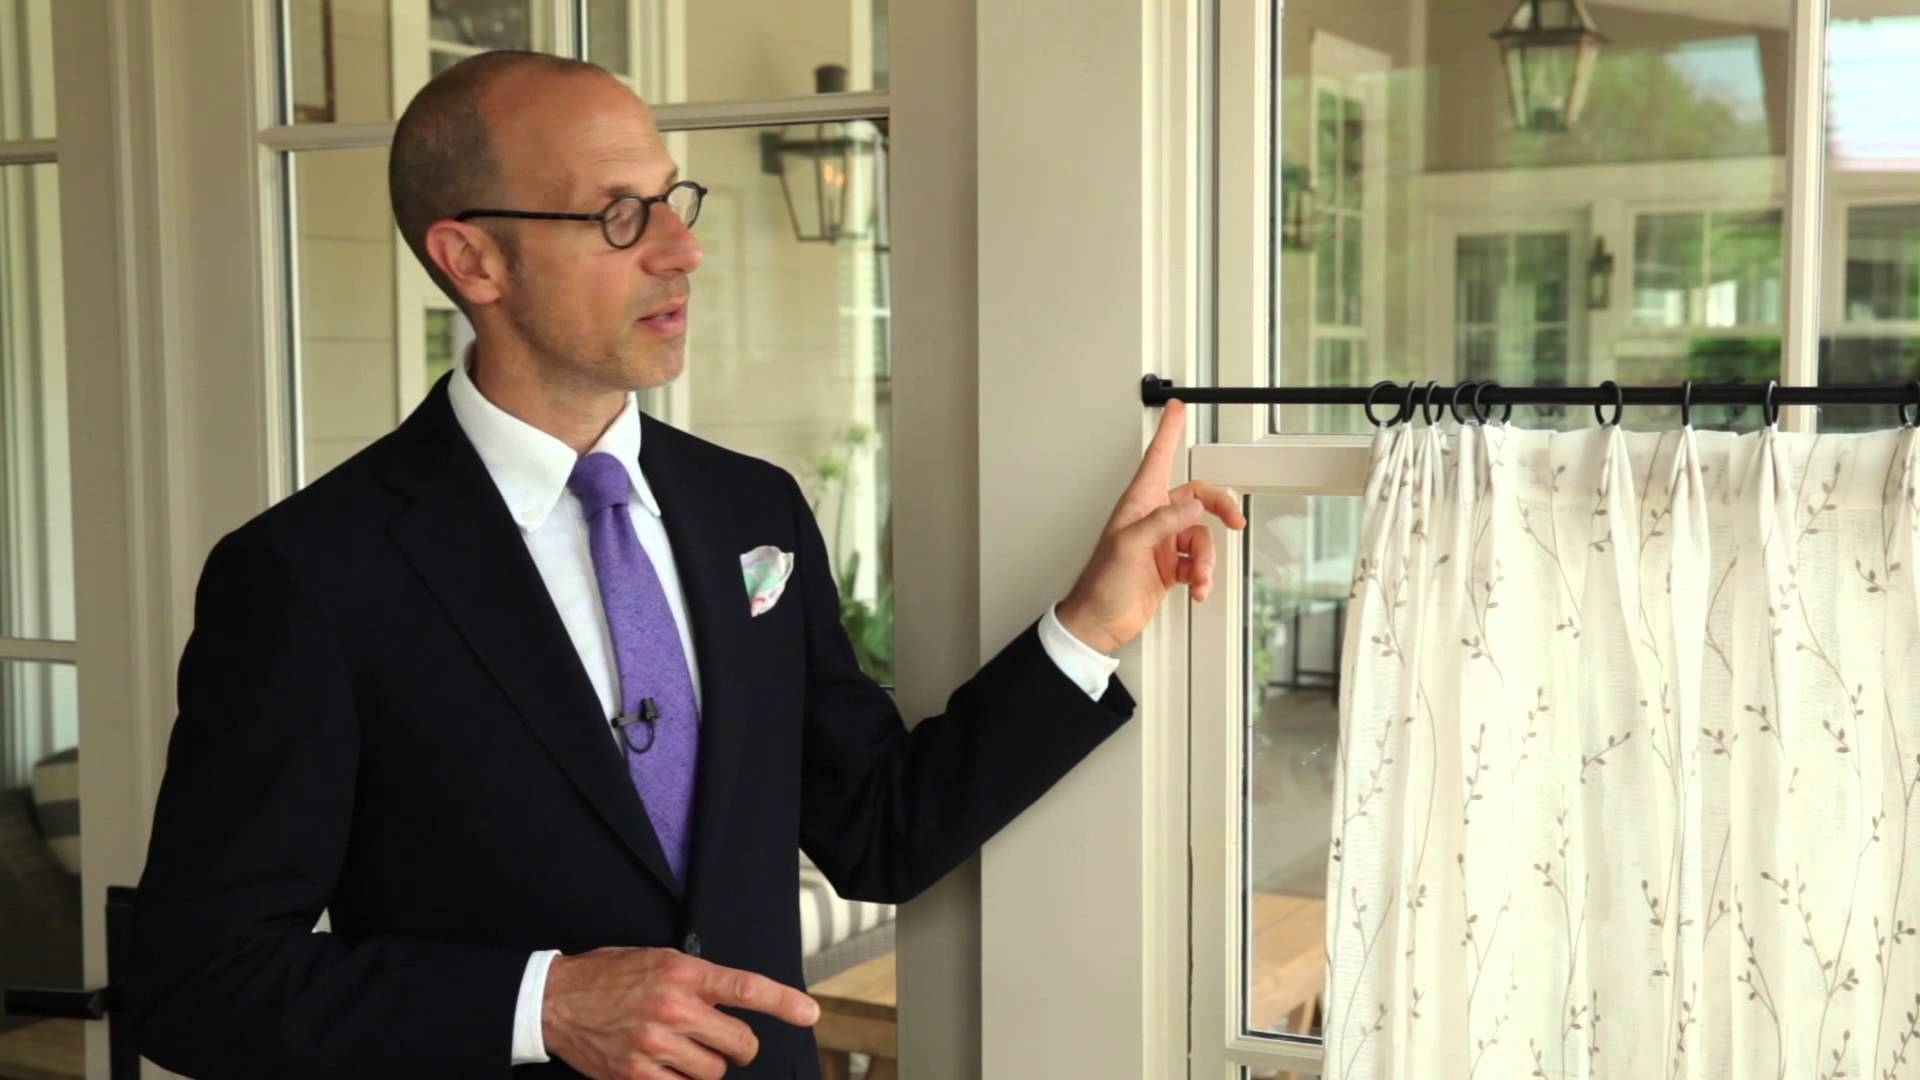 How To Hang Cafe Curtains Southern Living Youtube With Regard To Cafe Curtain Rods (Image 18 of 25)